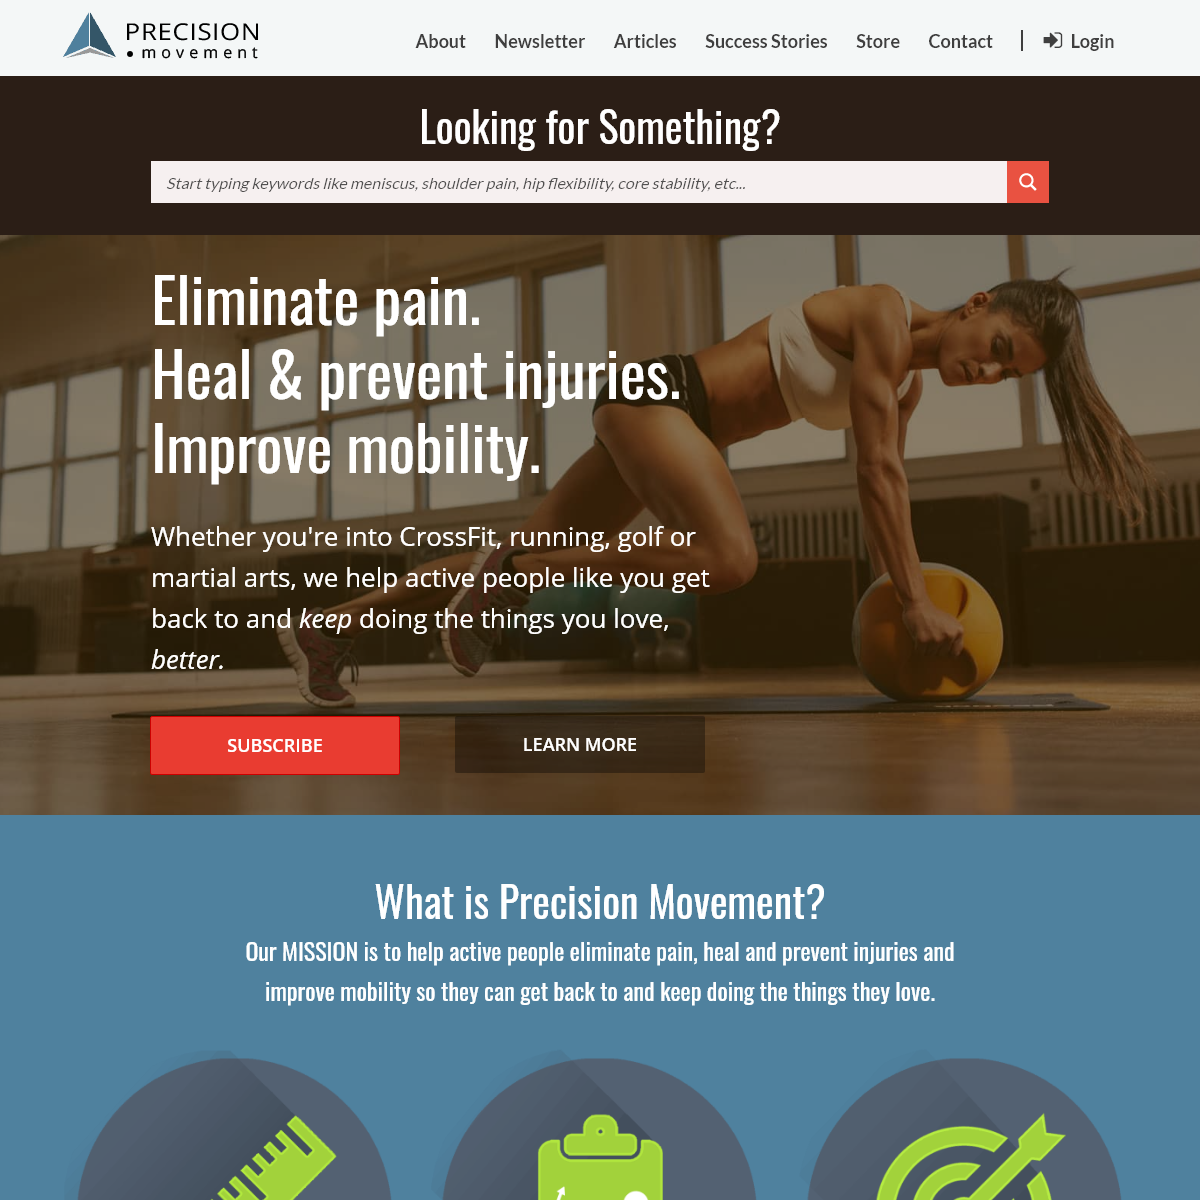 Eliminate Pain - Heal & Prevent Injuries - Improve Mobility - Precision Movement